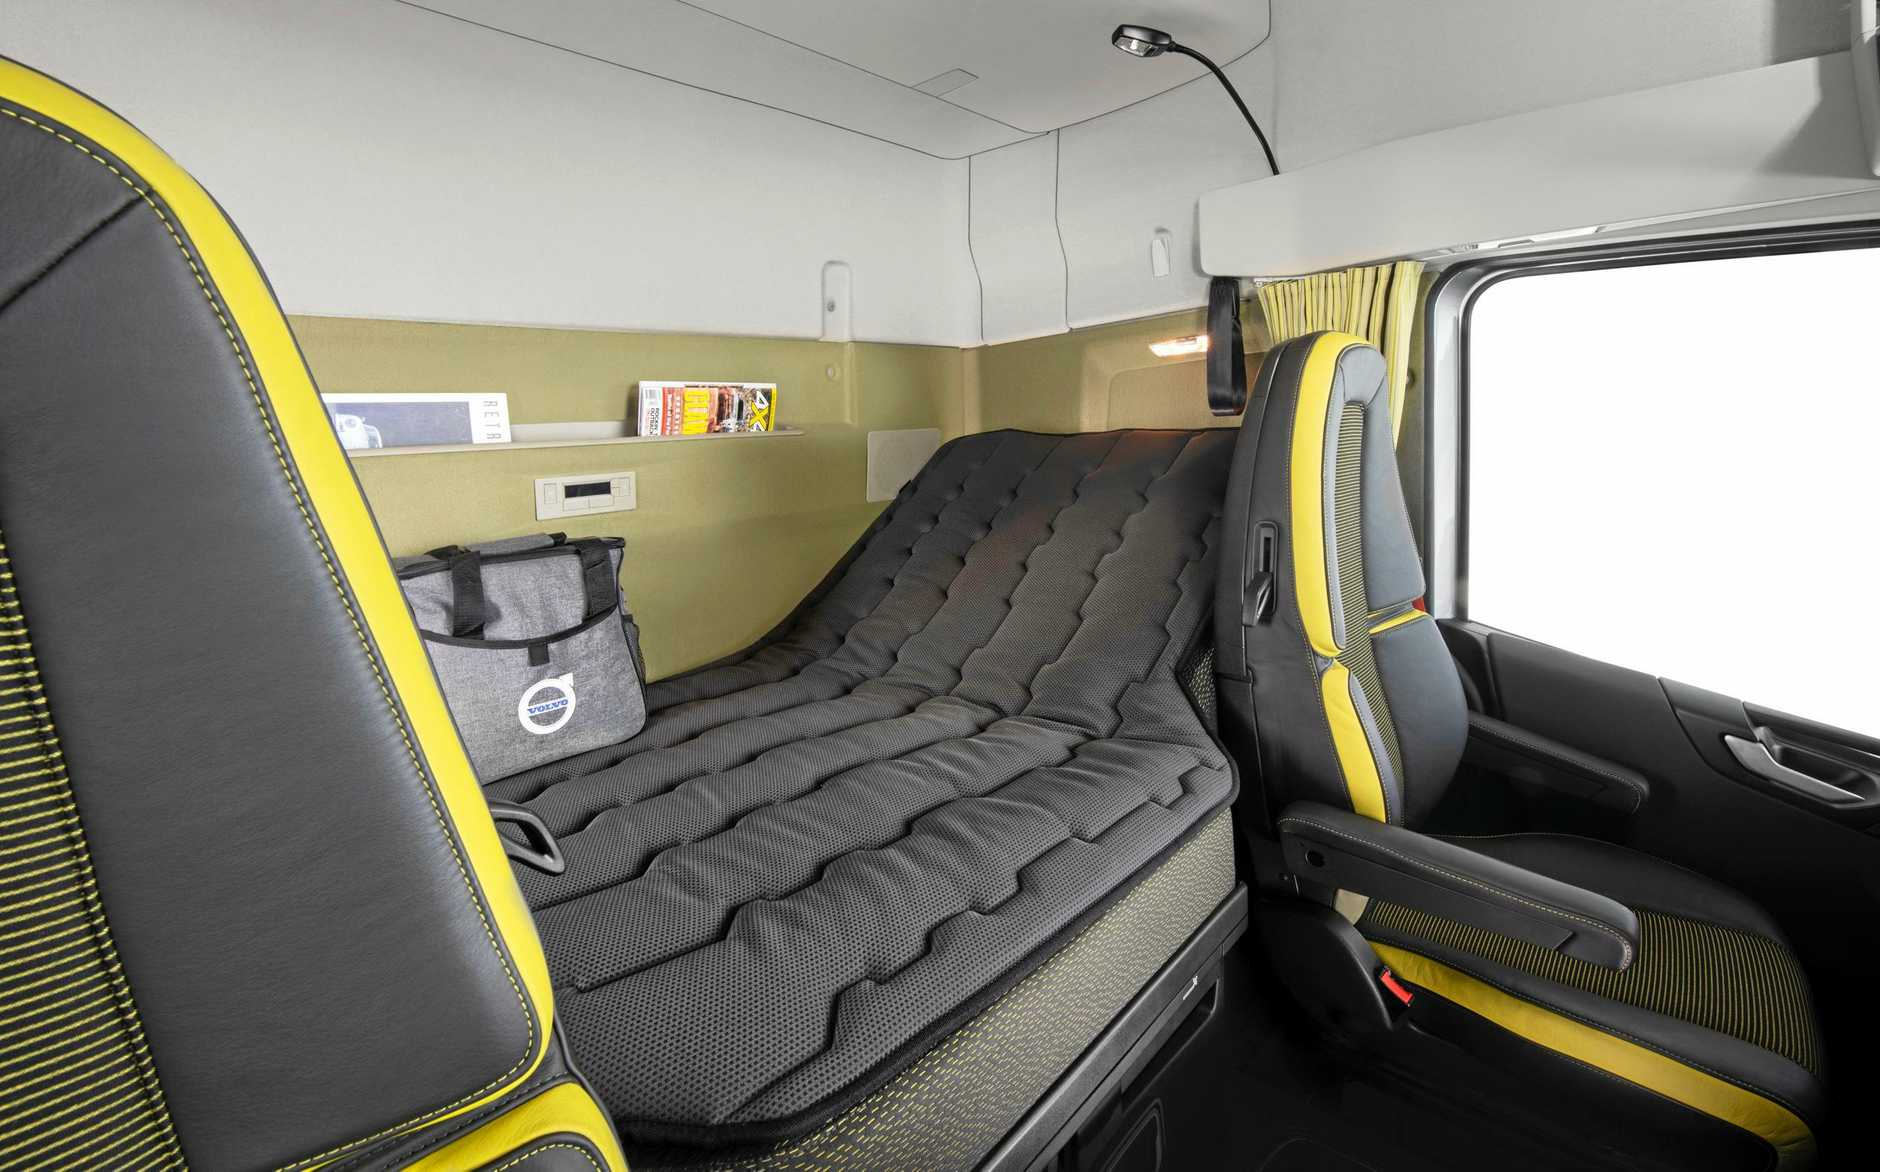 The wide soft bed has a recliner at the kerbside end. All controls are at hand.